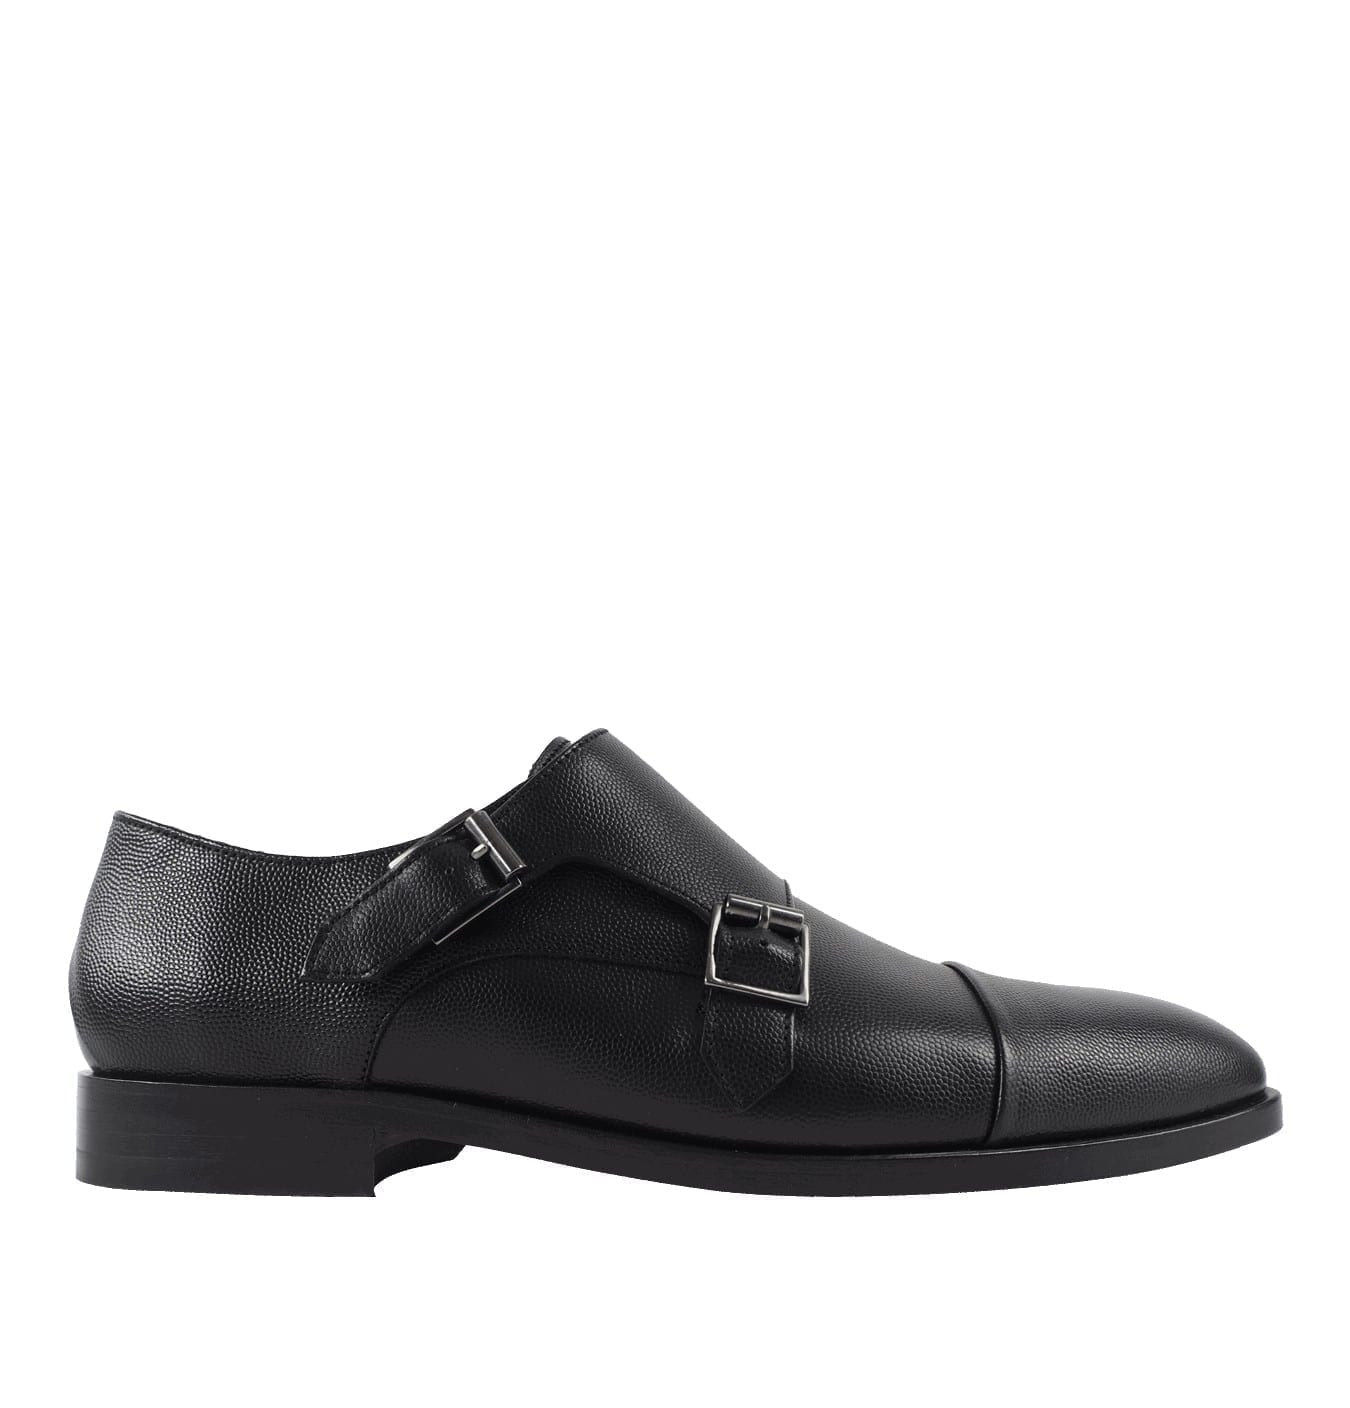 Image of   Men's Black 'Luigi' Double Monk-Strap Shoe